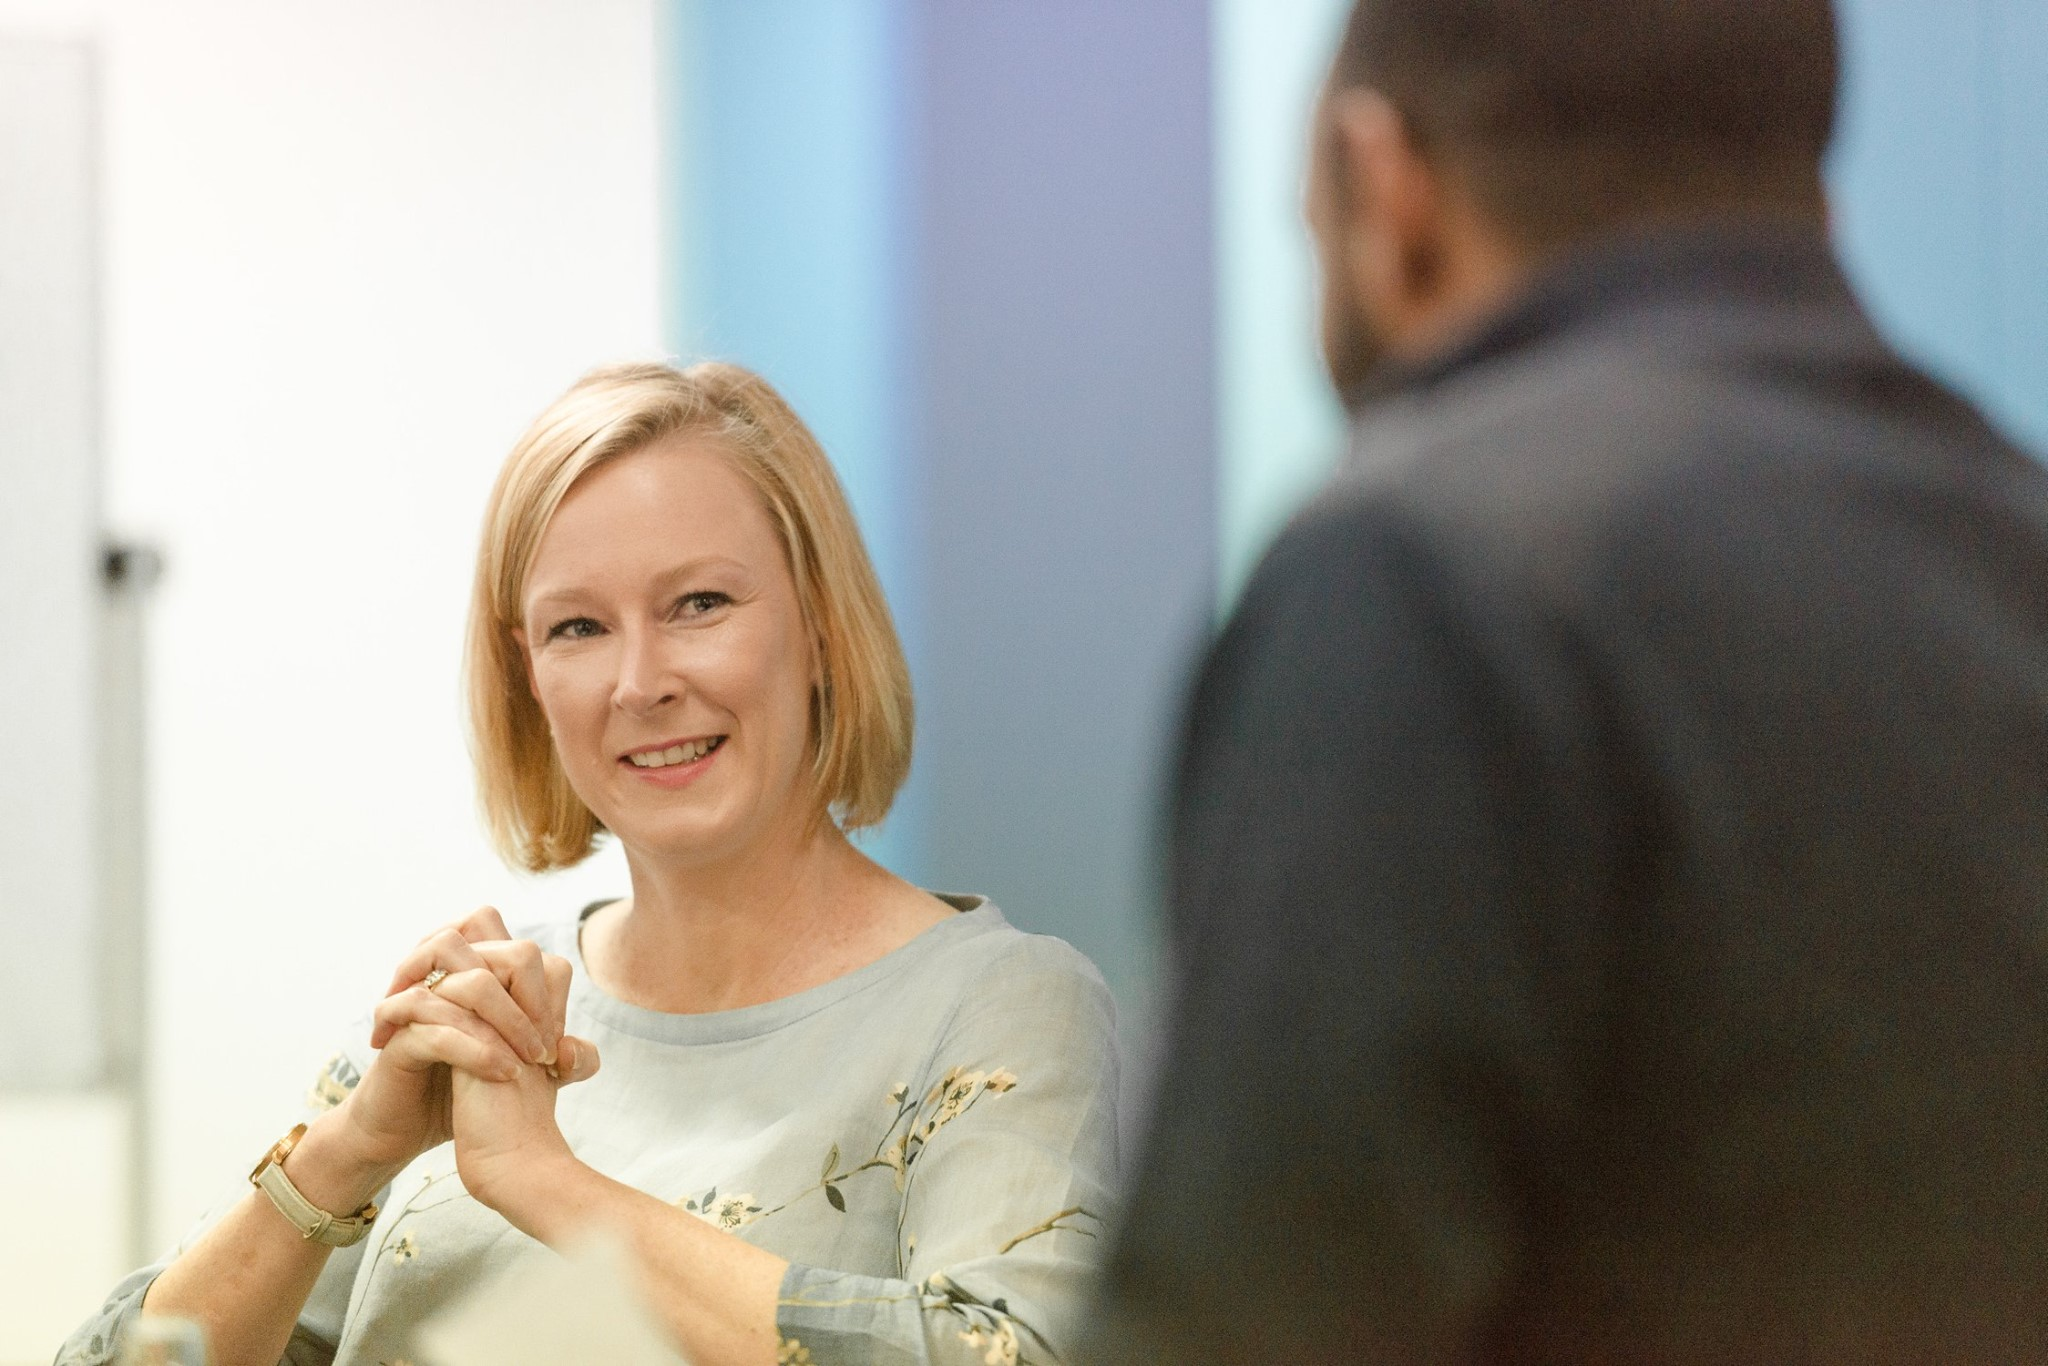 Leigh sales at Macleay College